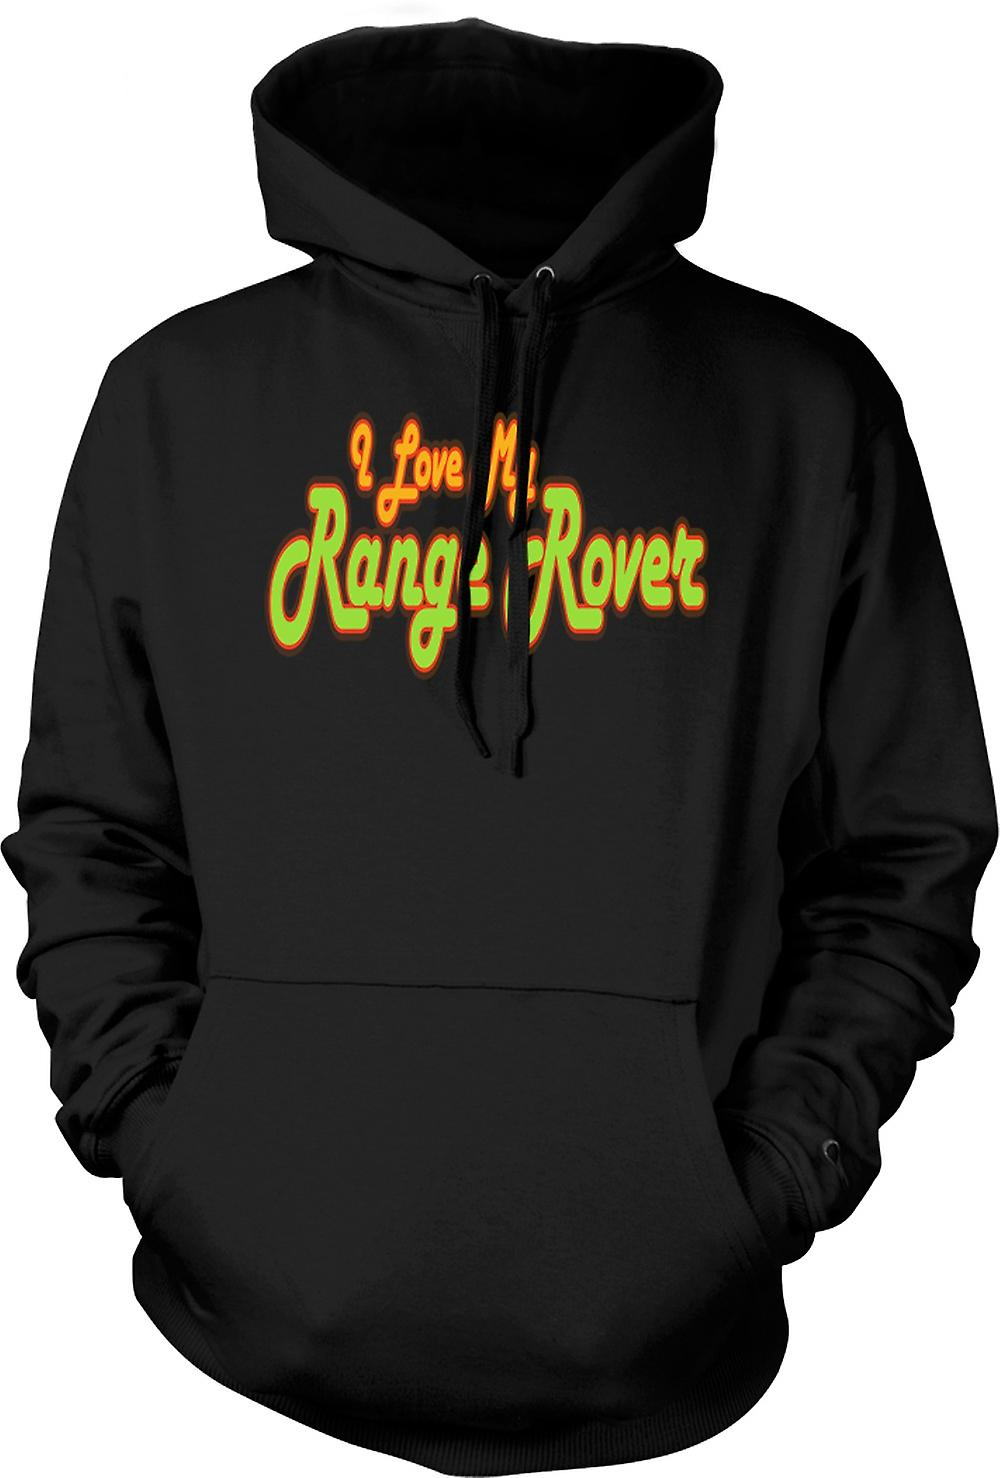 Mens Hoodie - I Love My Range Rover - Car Enthusiast